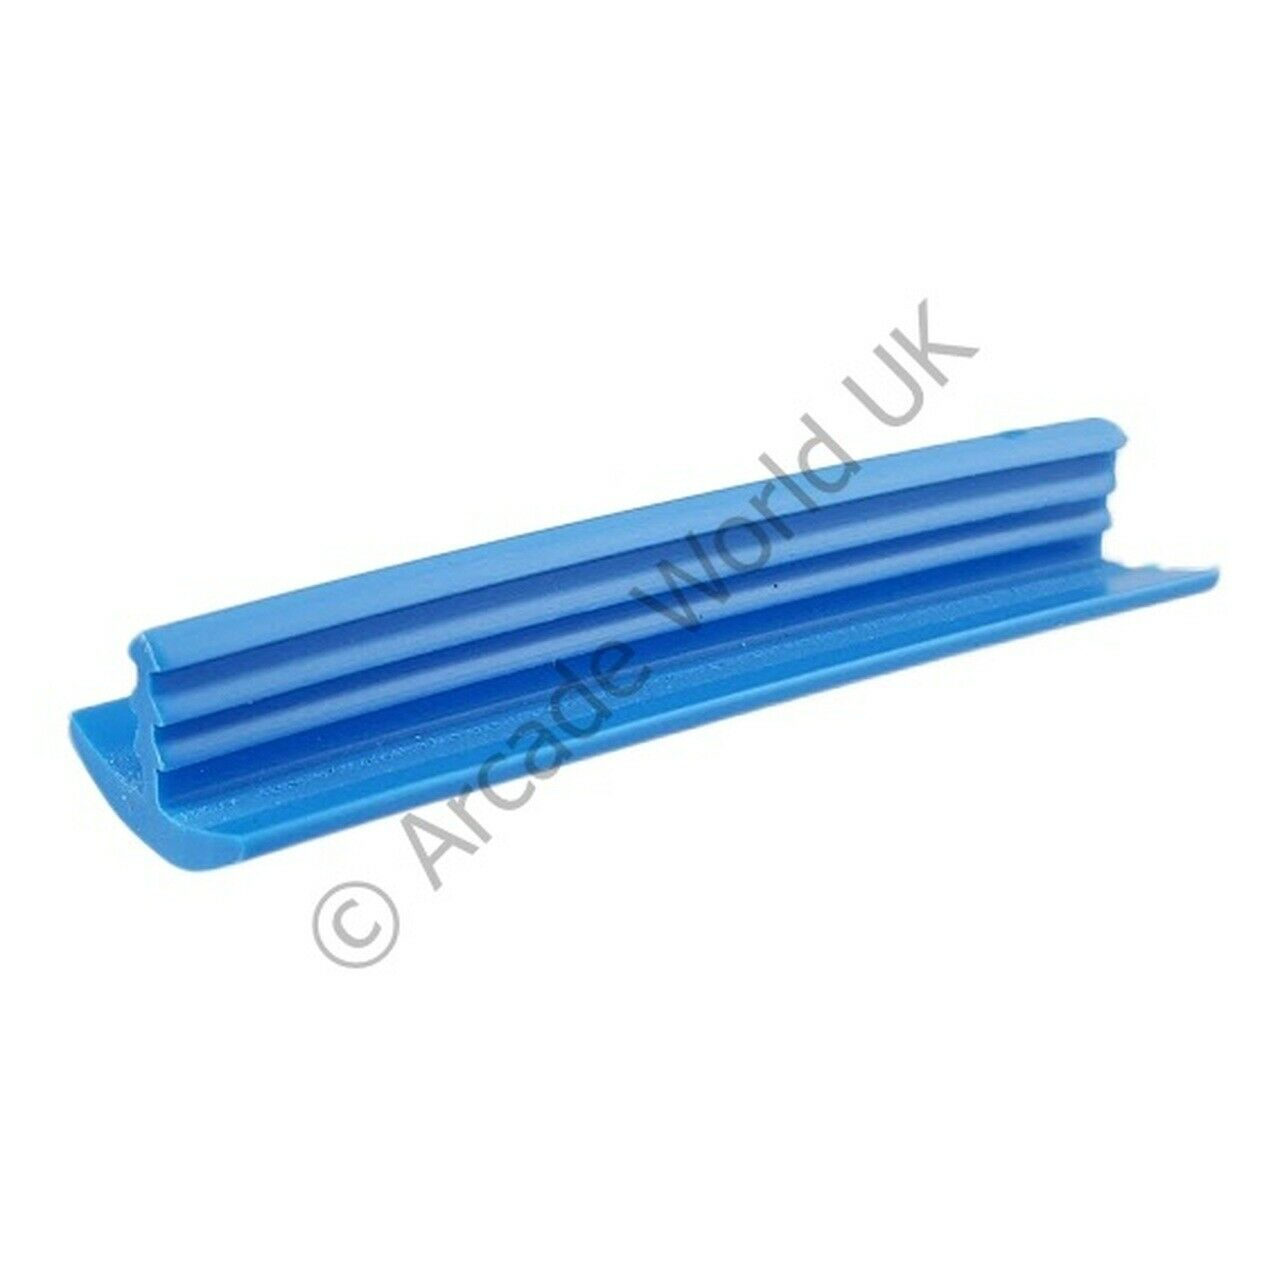 Toy Blue T-Molding 5/8